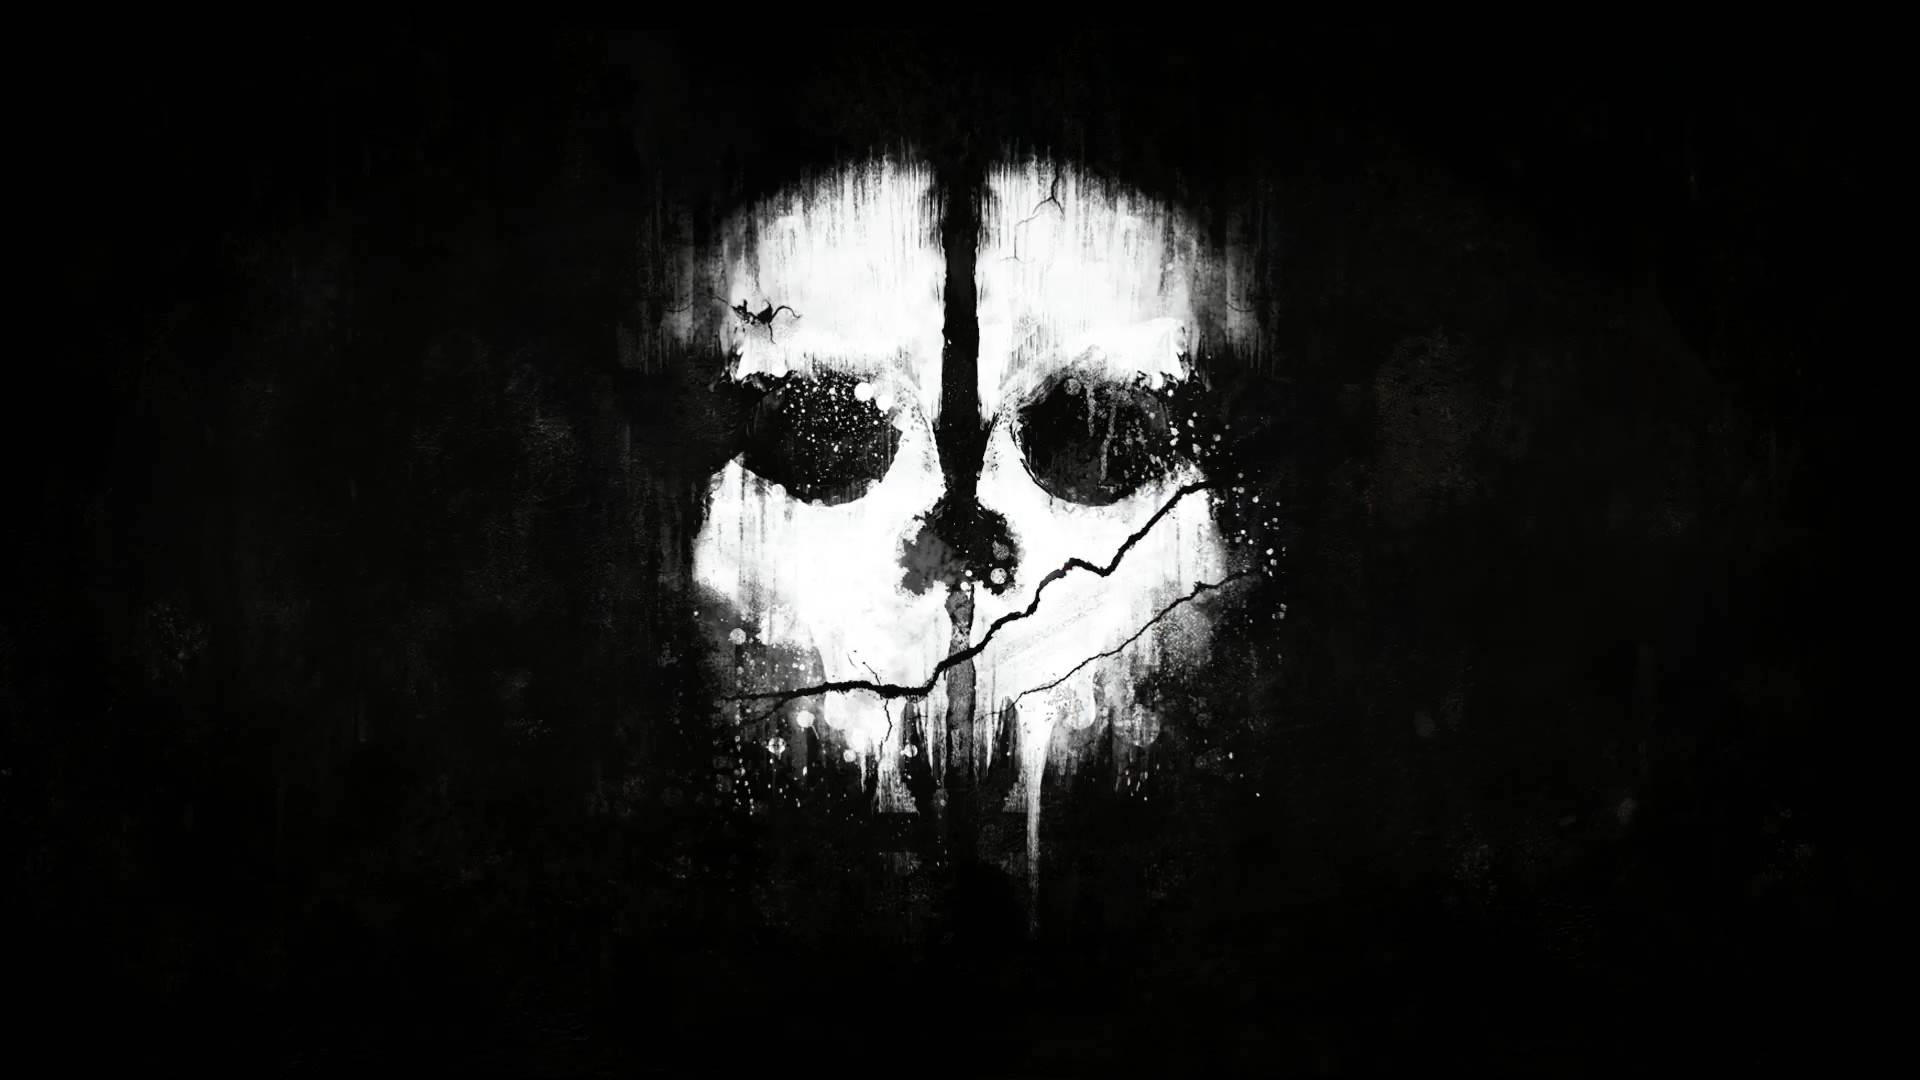 call of duty ghosts wallpaper in hd GamingBoltcom Video Game News 1920x1080